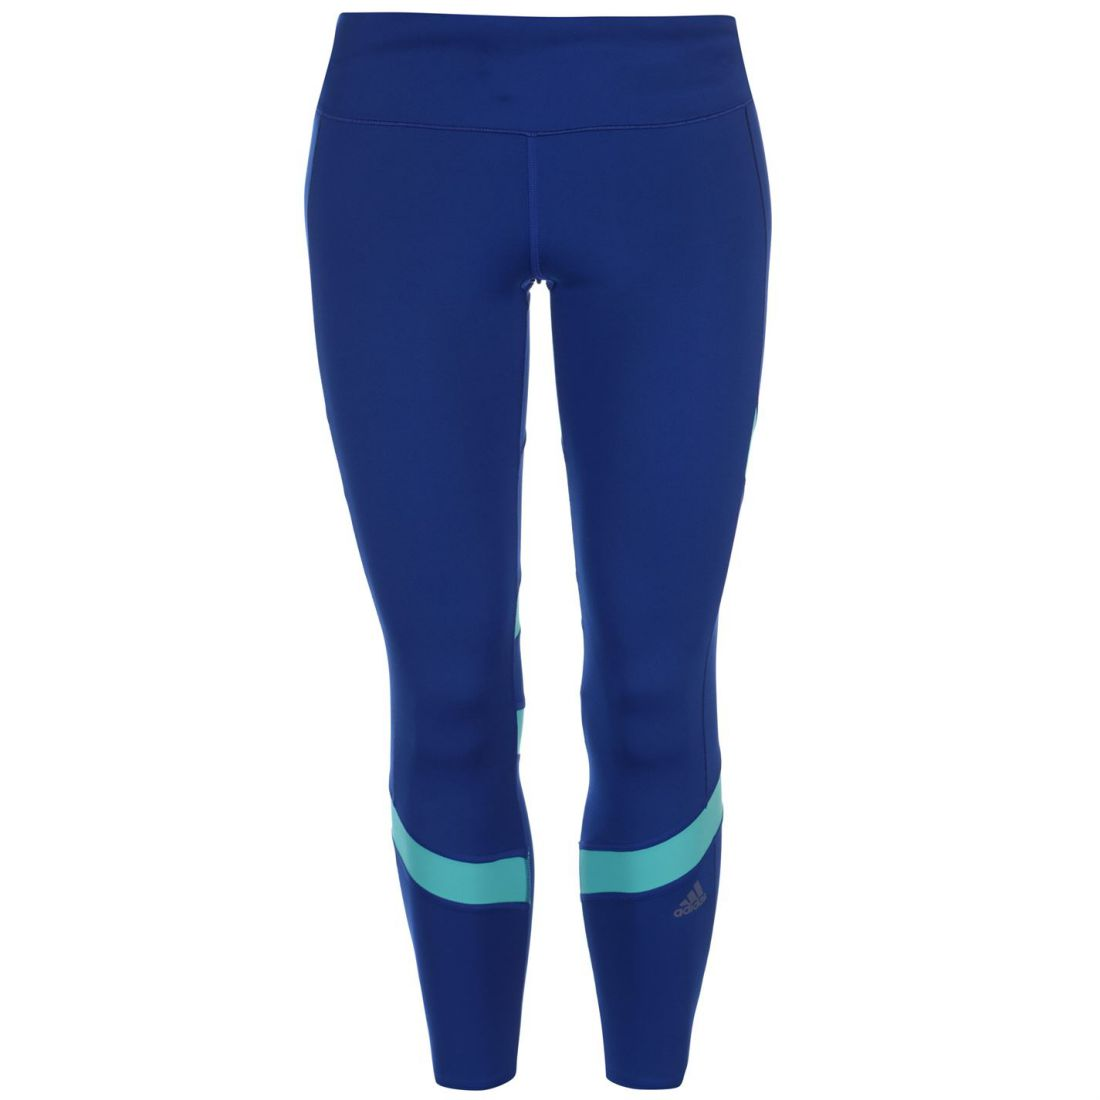 e29bf724c4c adidas Womens Workout Tights Performance Pants Trousers Bottoms Zip ...